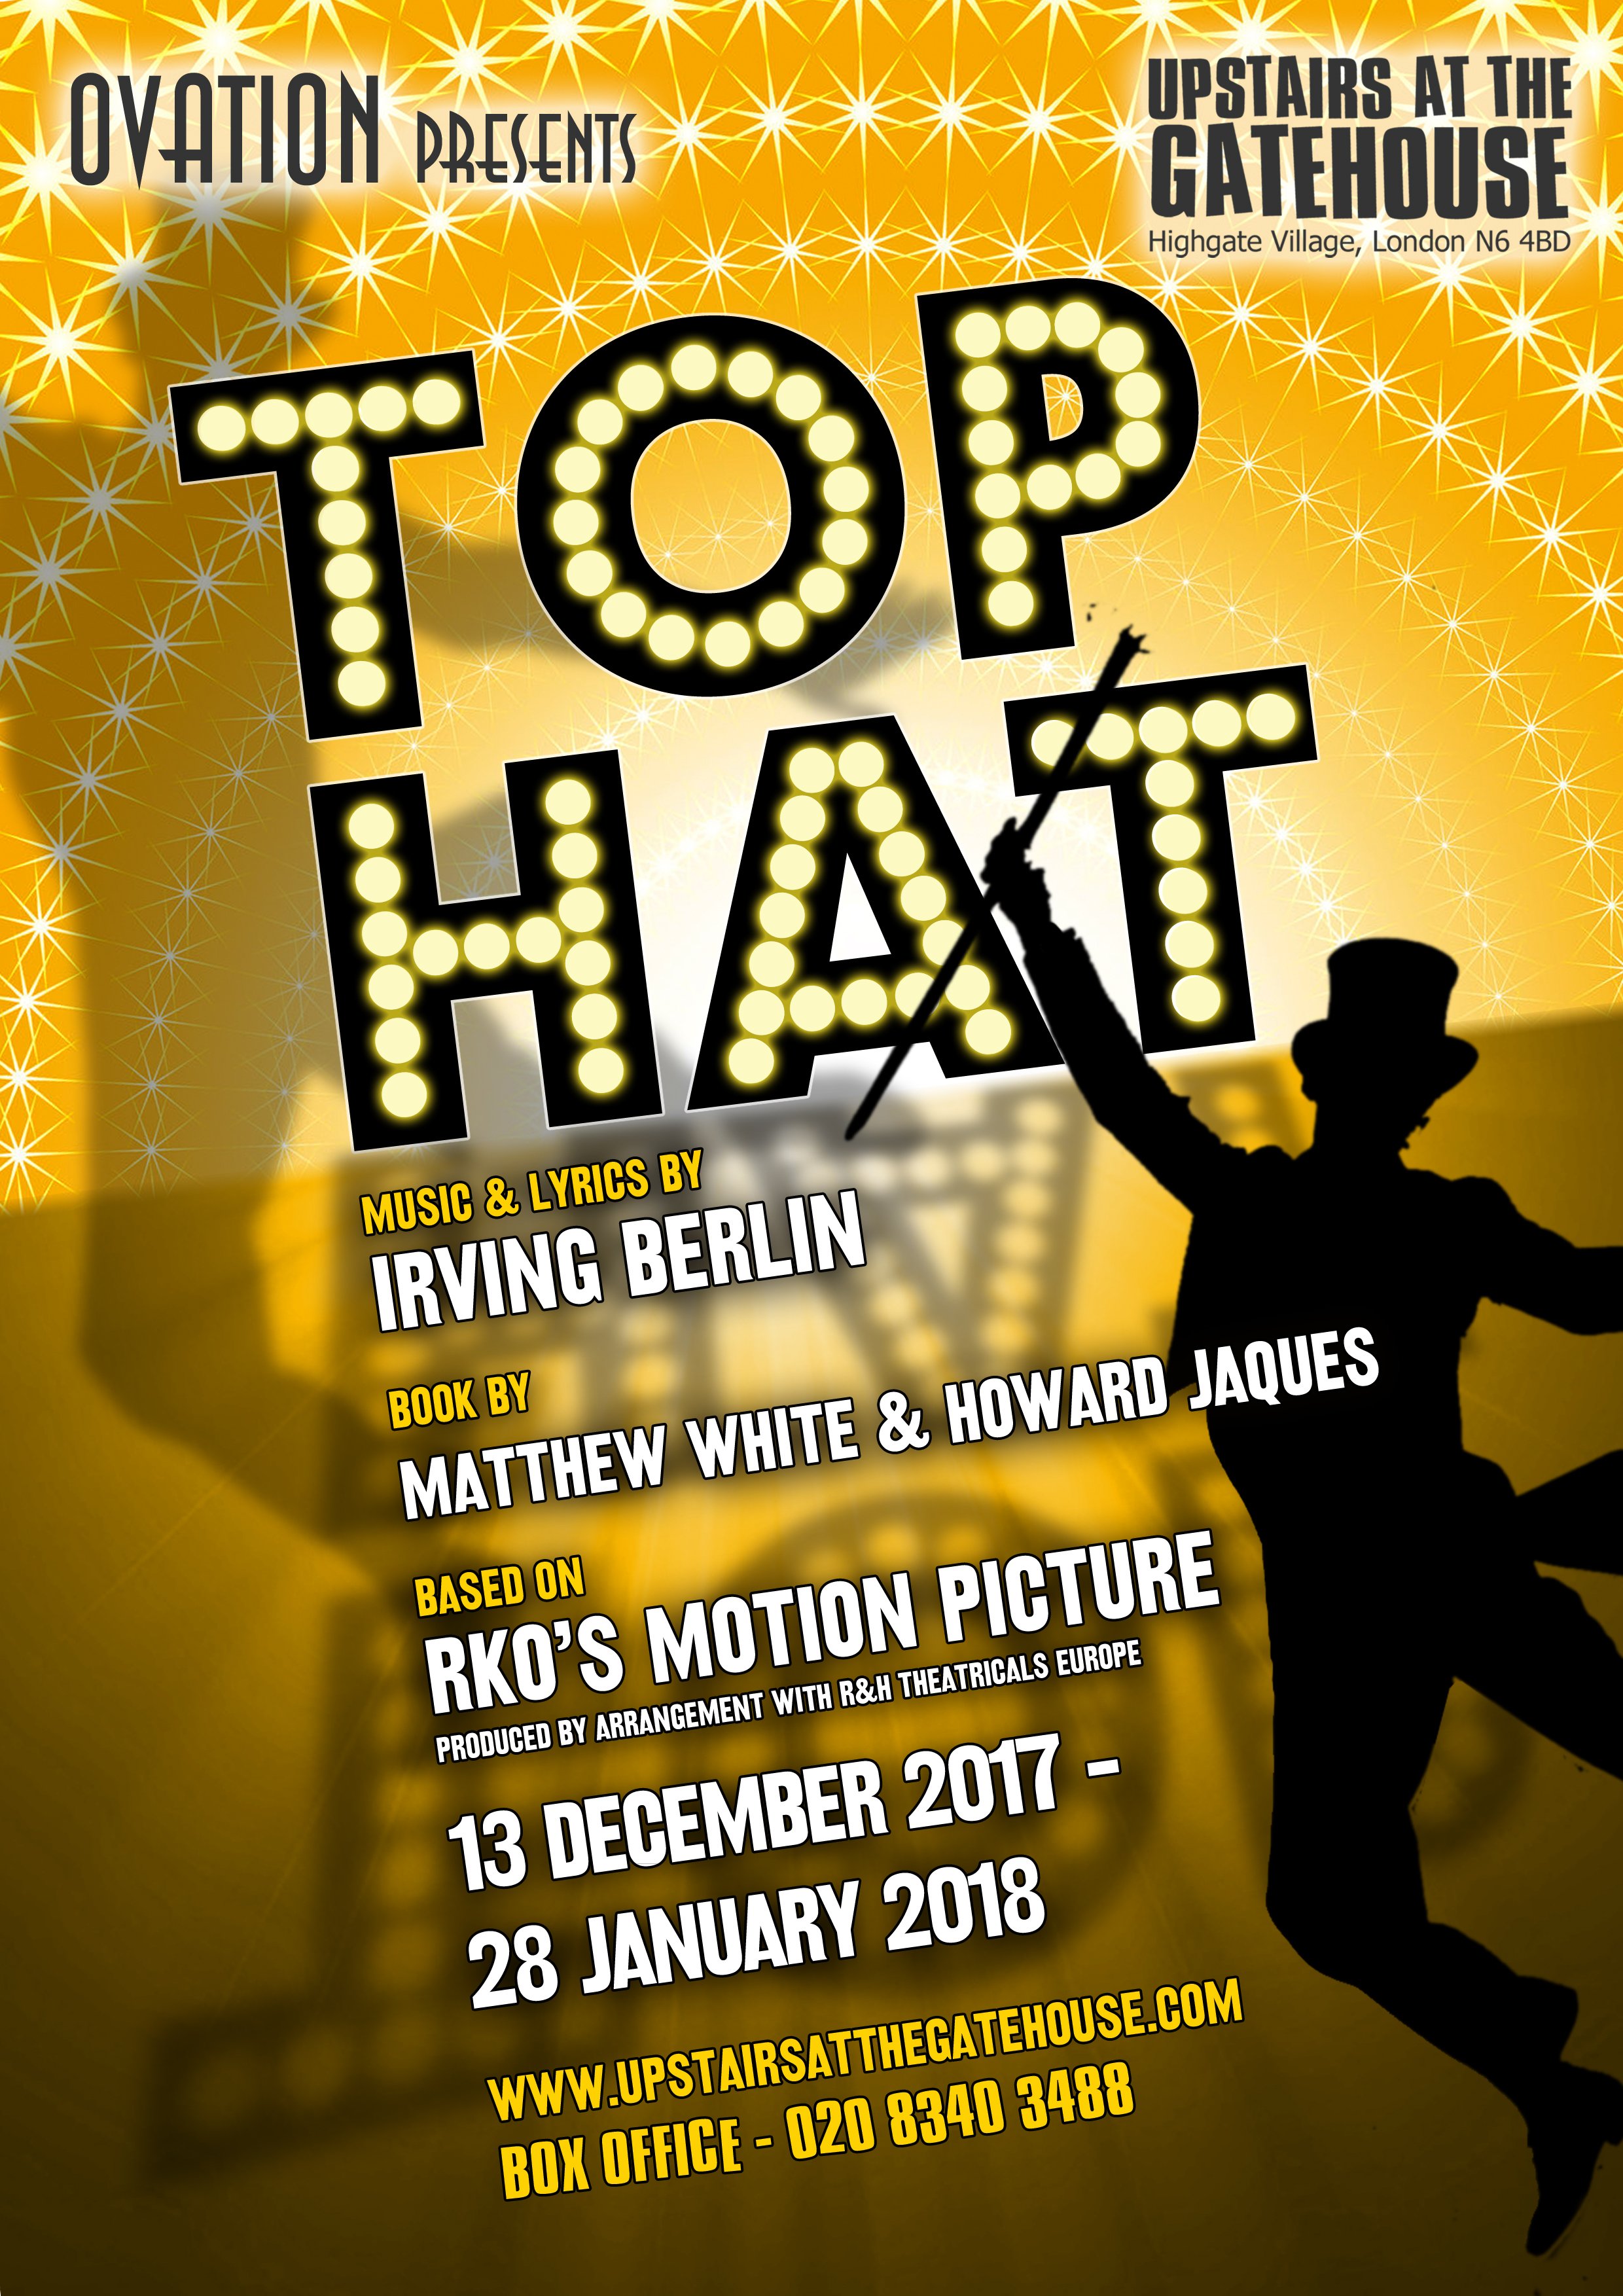 Top Hat poster design